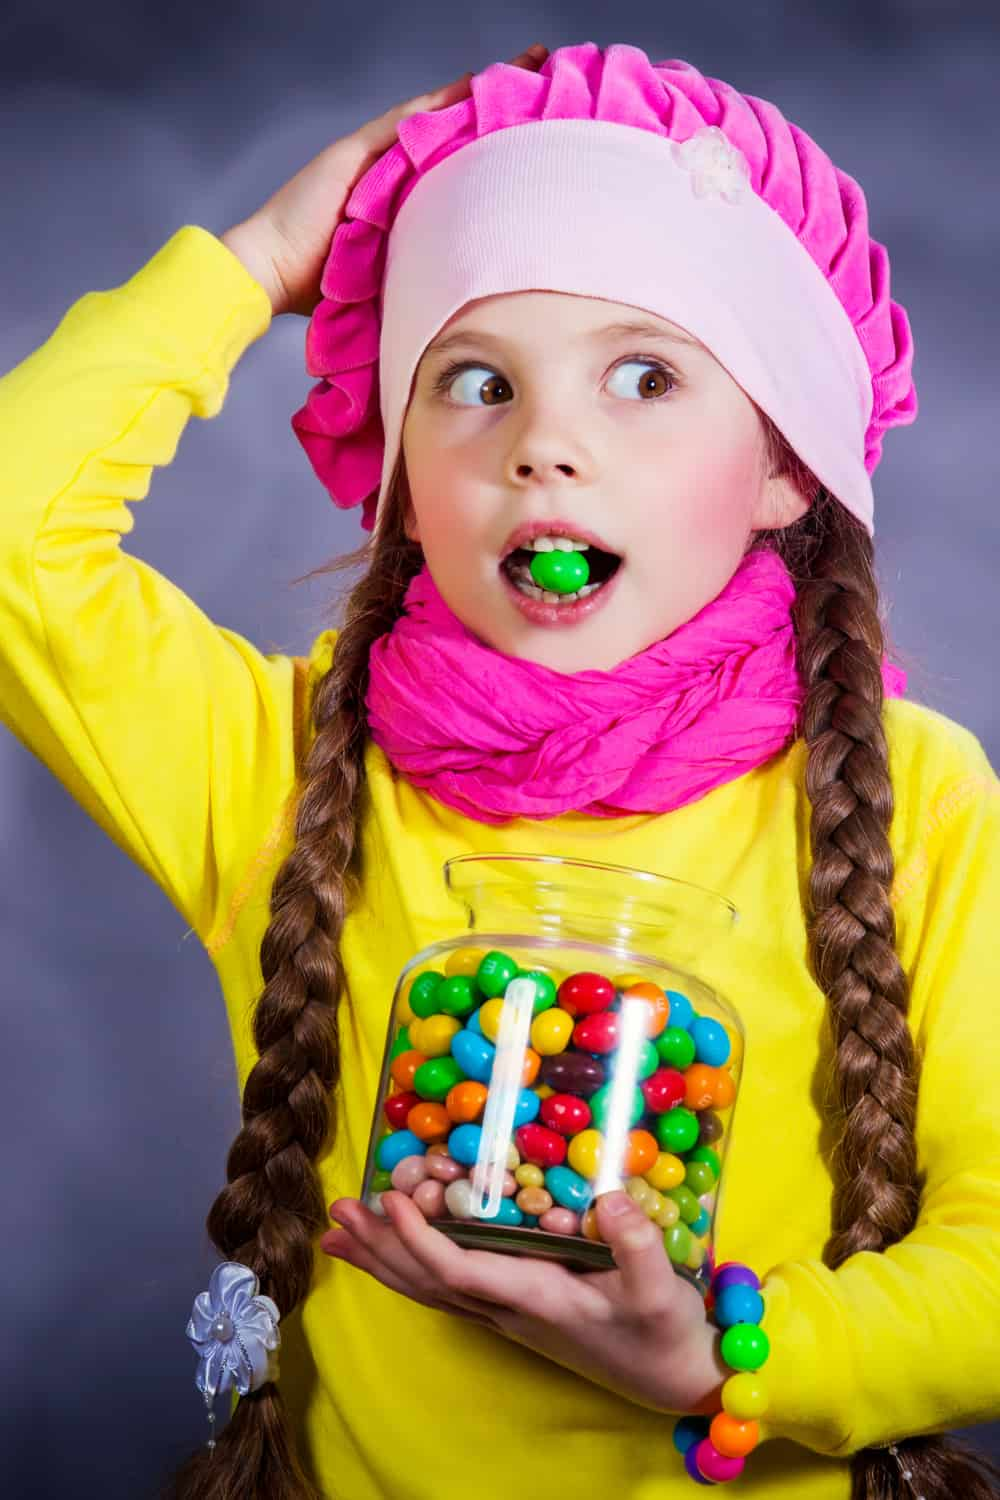 What is the Risk of Consuming an expired Jelly Bean